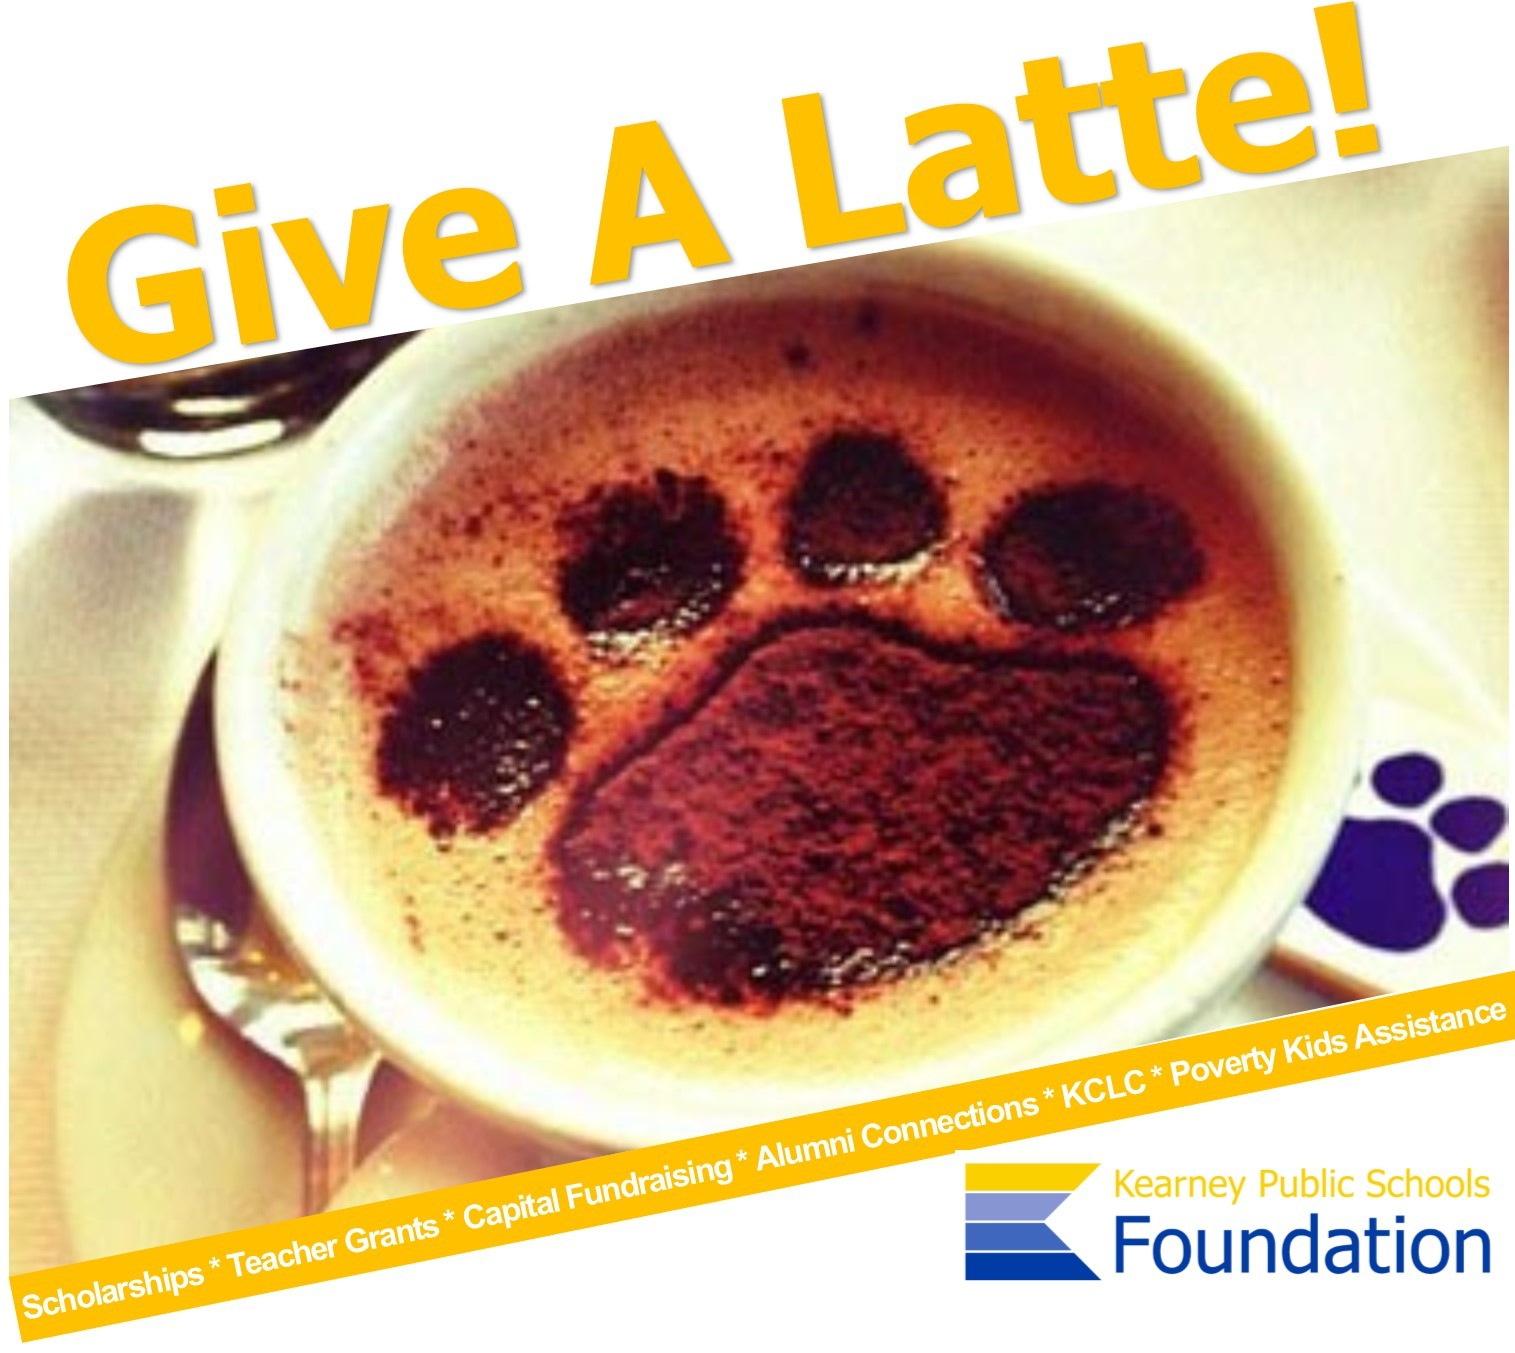 Give a Latte!